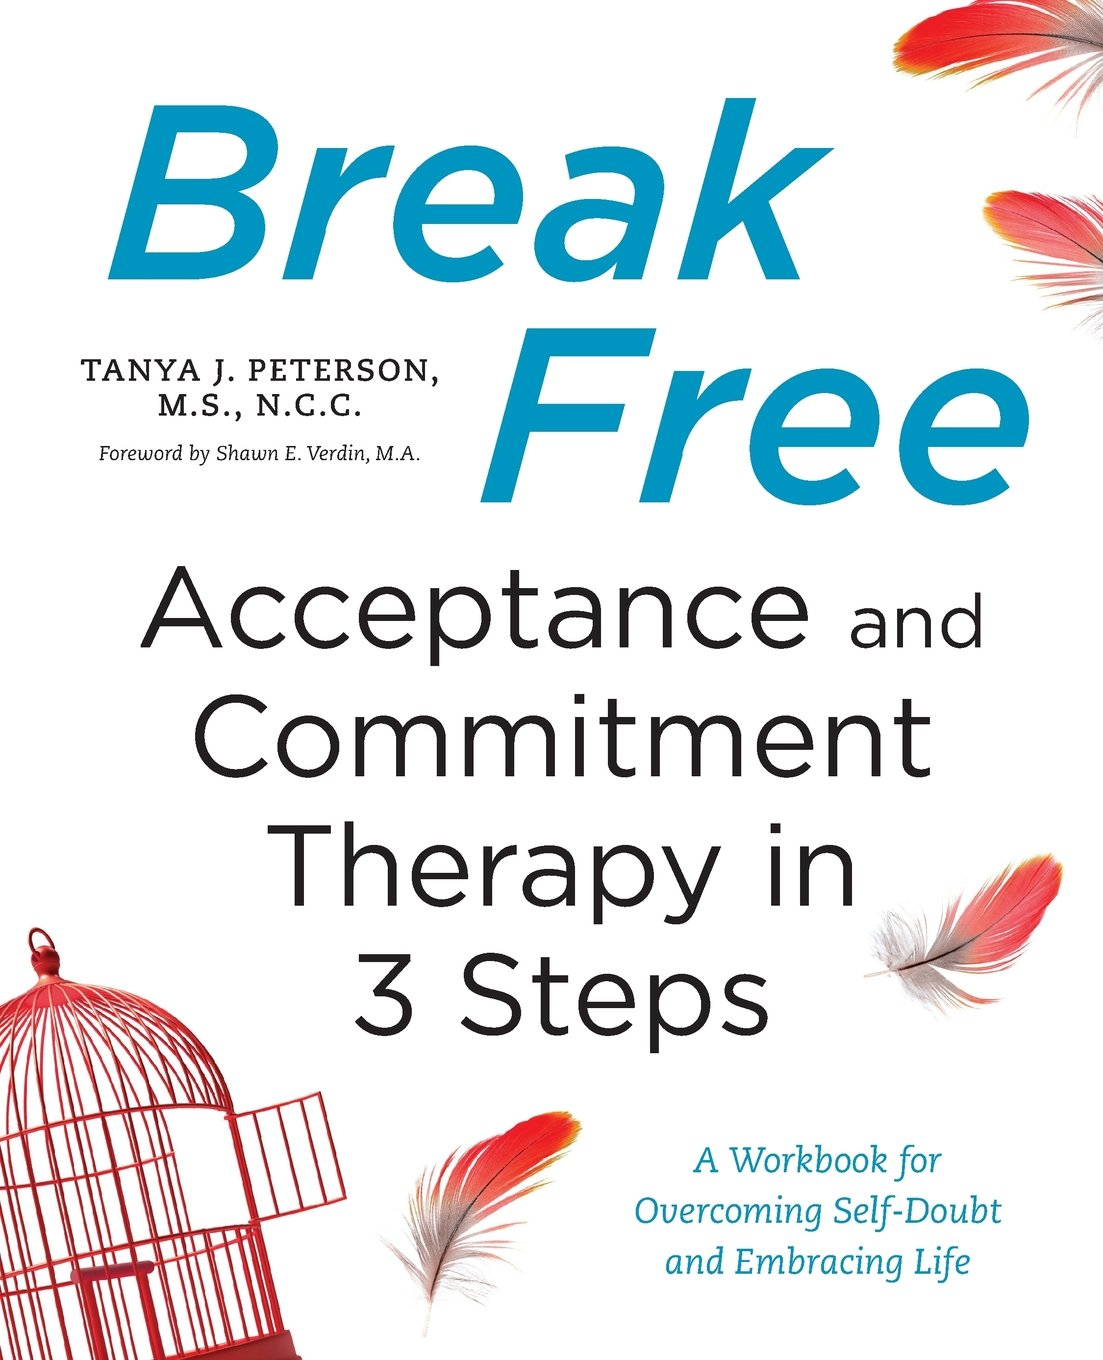 Amazon.com: Break Free: Acceptance and Commitment Therapy in 3 ...